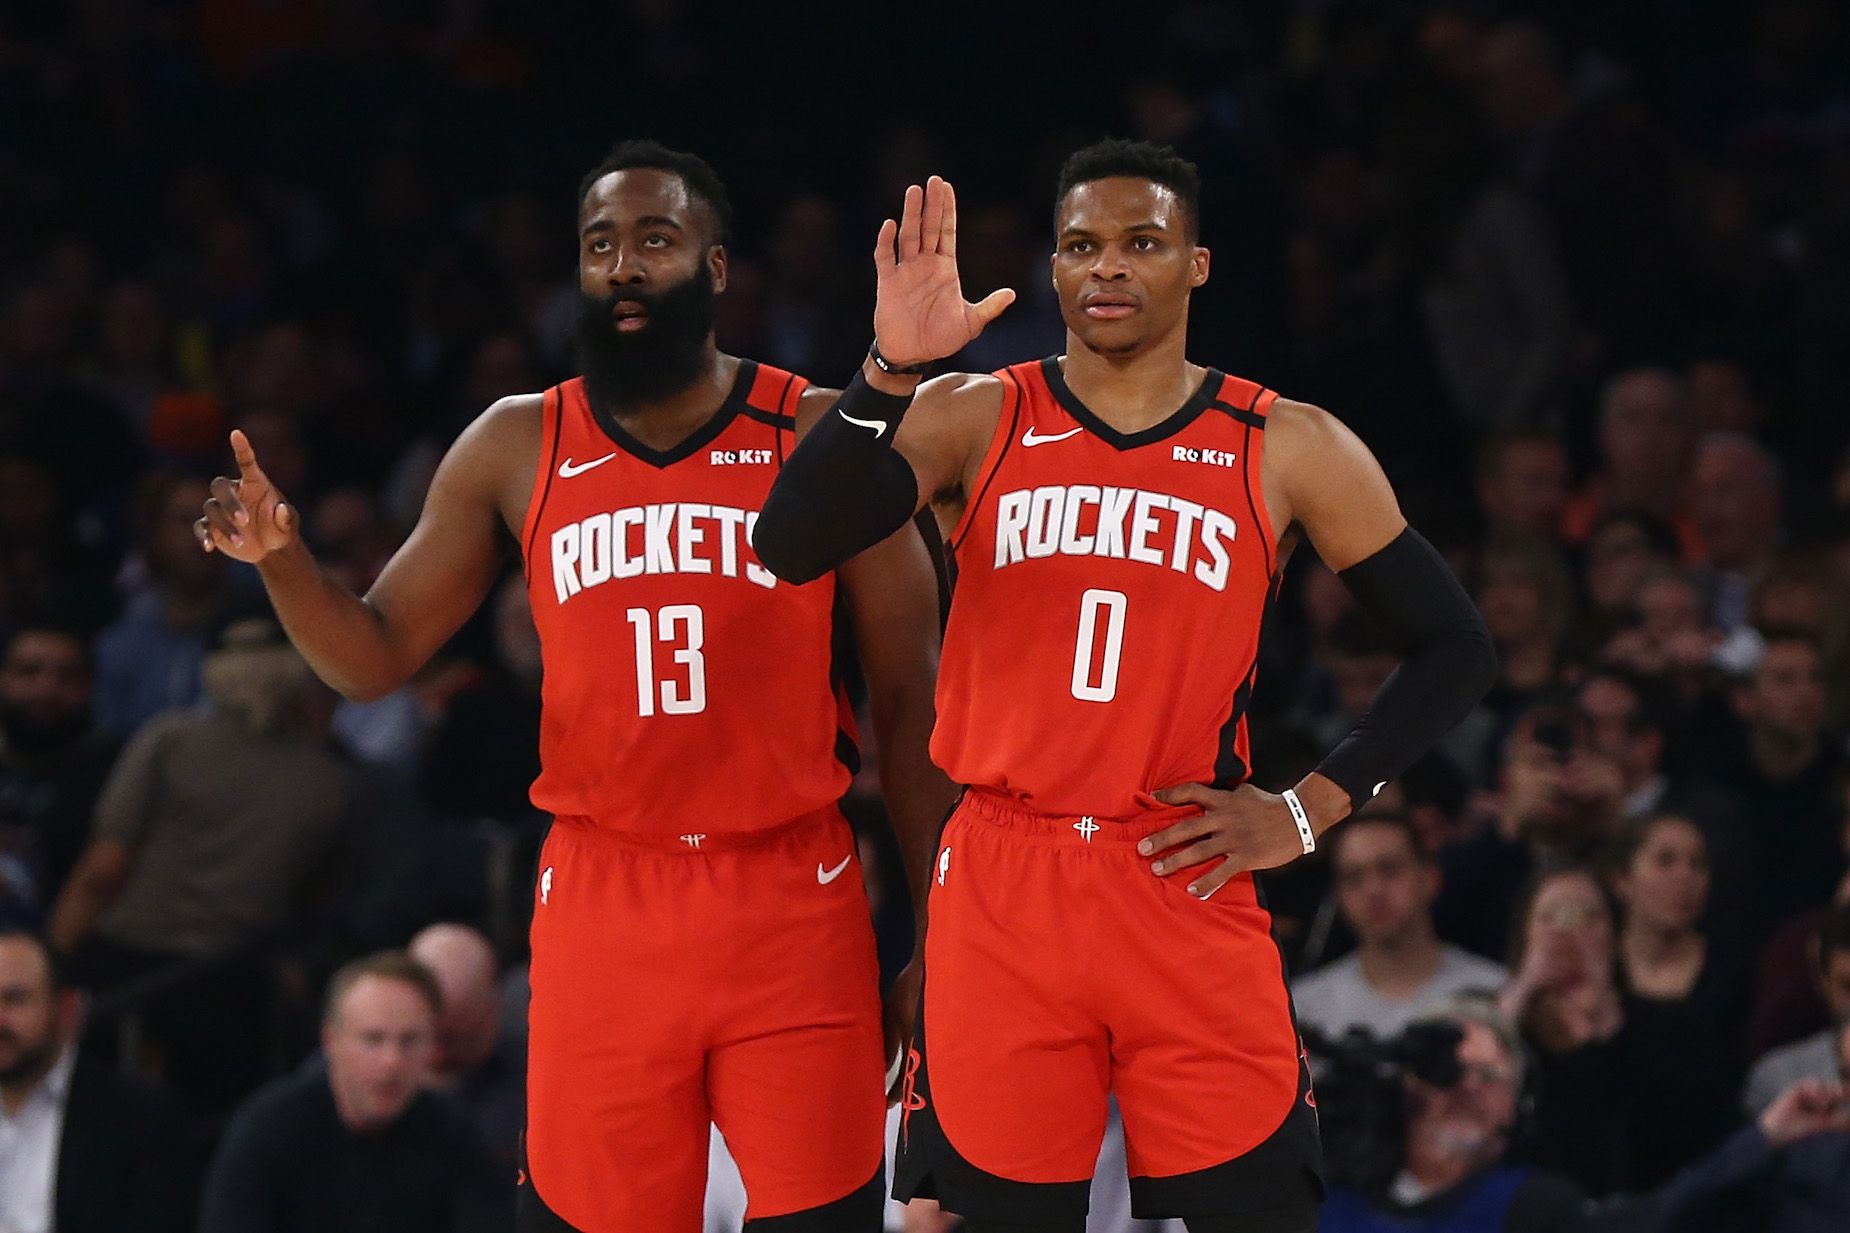 James Harden and Russell Westbrook are teammates and friends, but which one has made more money in the NBA?